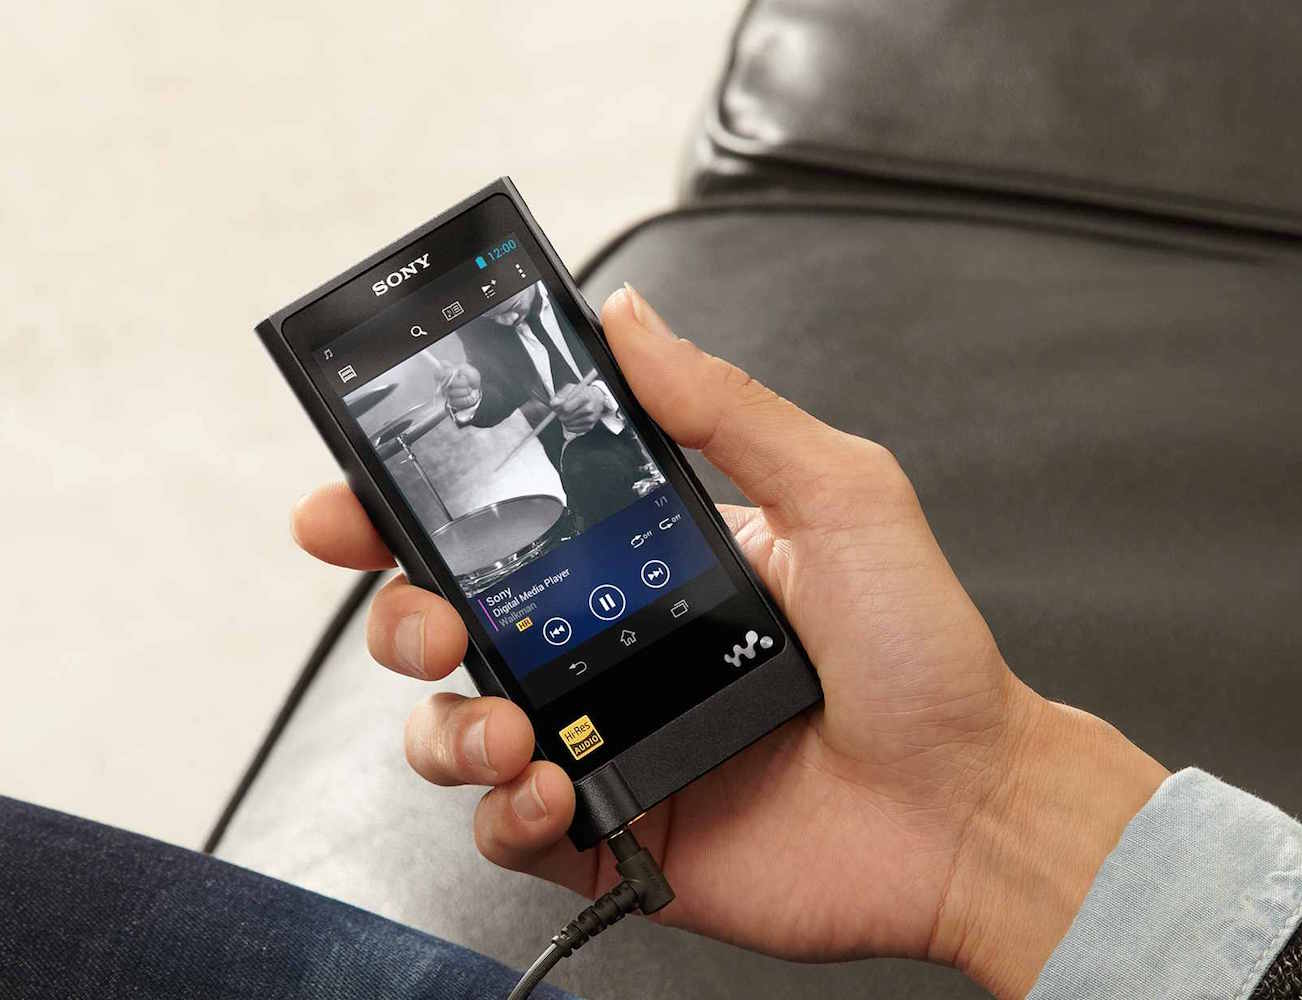 Zx2 High Resolution Walkman From Sony 187 Review